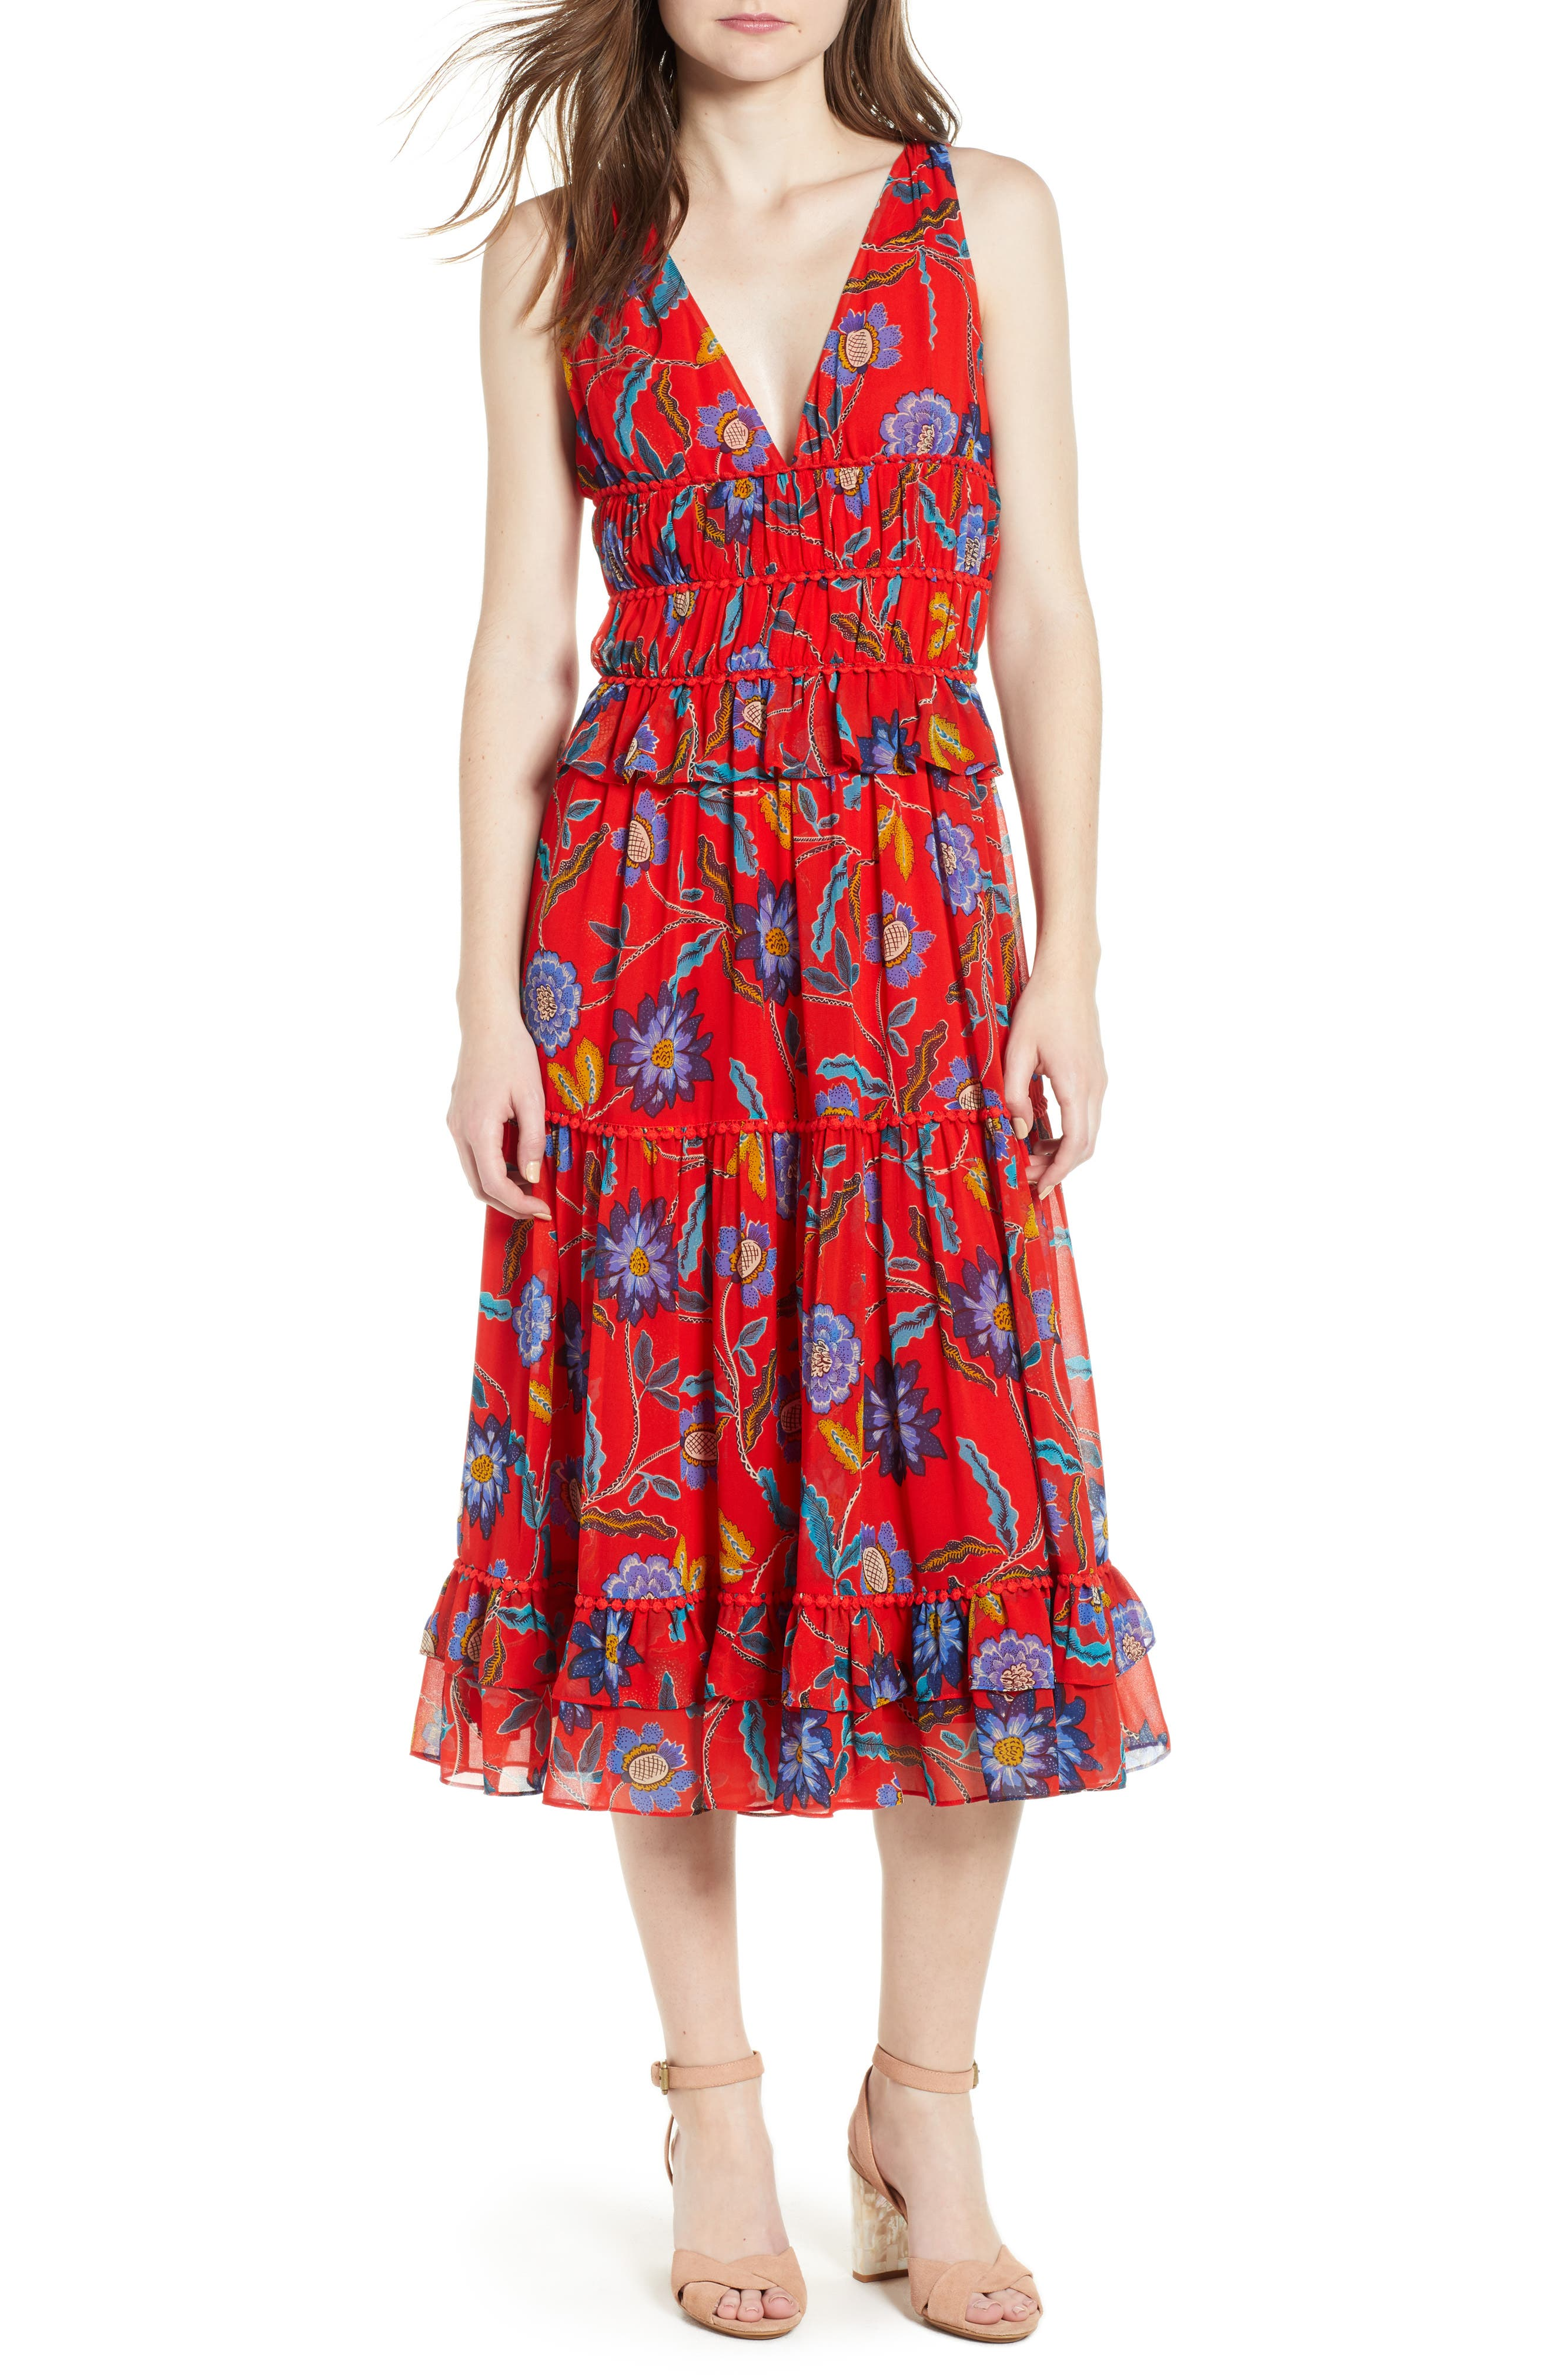 Lucy Floral Dress,                             Main thumbnail 1, color,                             Red Multi